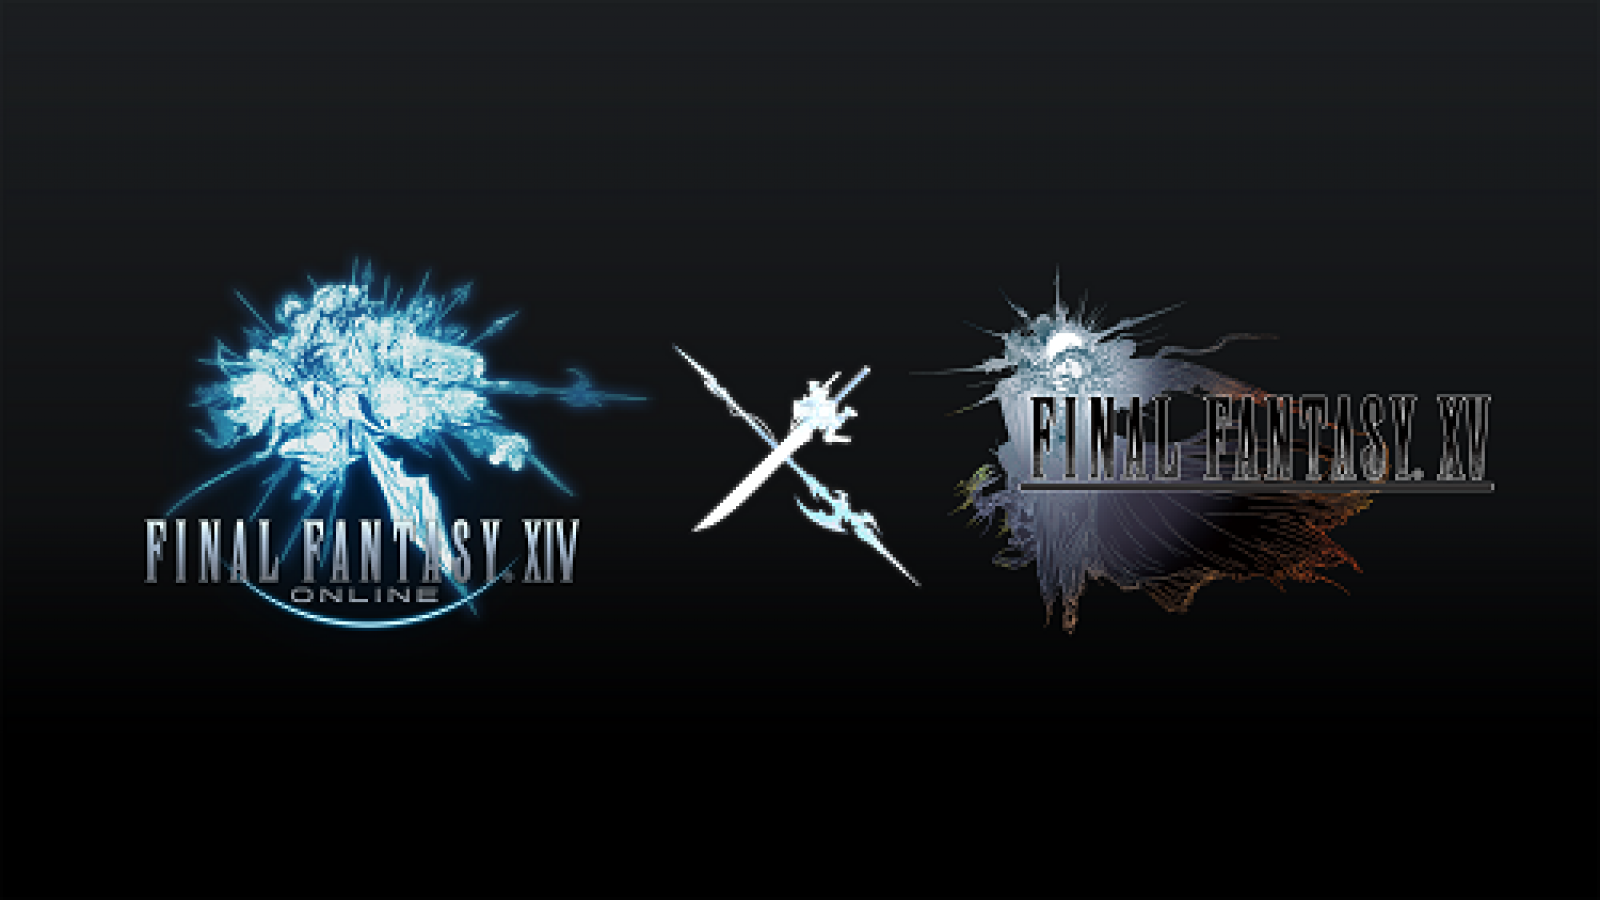 Final Fantasy XIV x Final Fantasy XV Collaboration Trailer